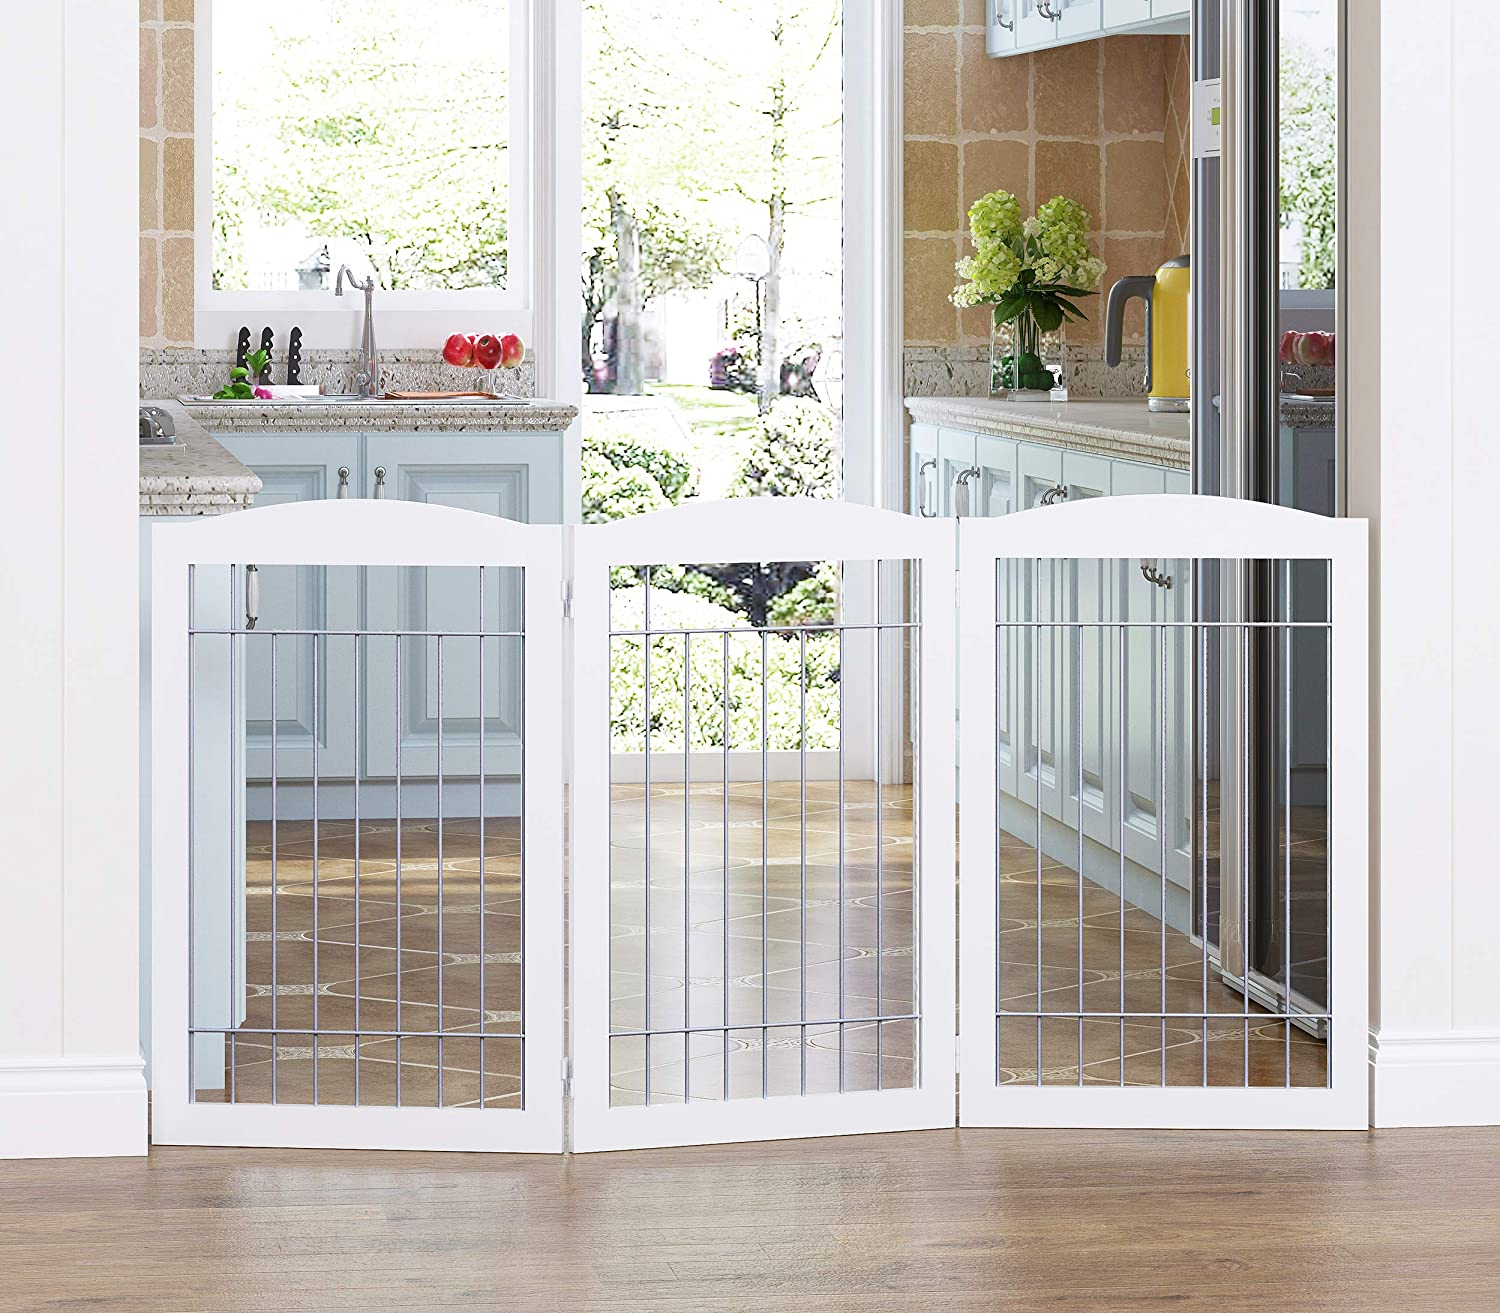 Spirich Freestanding Wire Pet Gate for Dogs, 60 inches Extra Wide, 30 inches Tall Dog Gate for The Houes, Doorway, Stairs, Pet Puppy Safety Fence, White with Sliver Wire- 3 Panels(NO Included FEET)